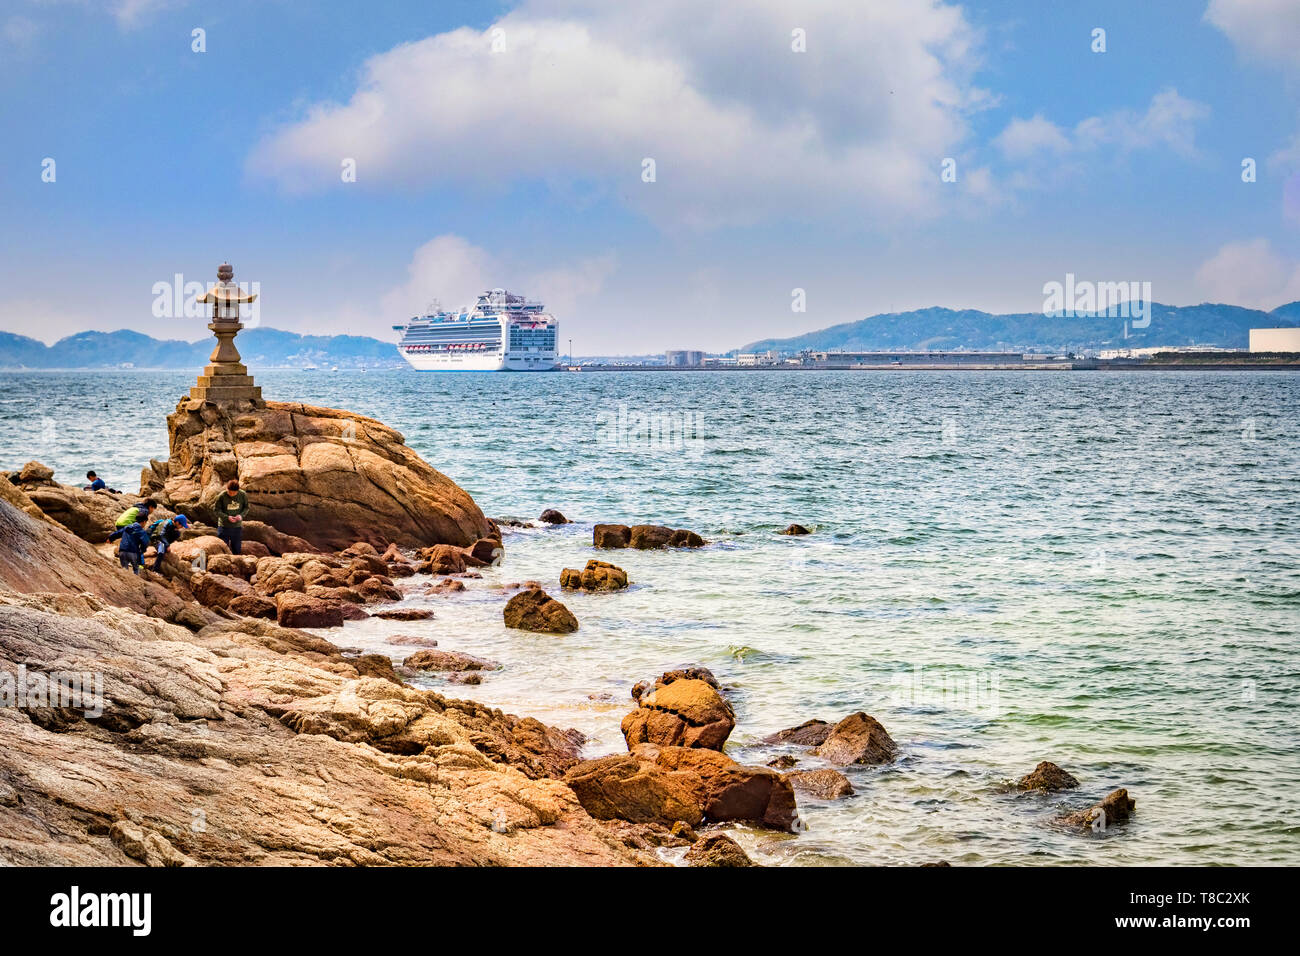 27 March 2019: Gamagori, Japan - The shore of the island of Takeshima, off Gamagori, with the cruise ship 'Diamond Princess' docked in the distance. Stock Photo